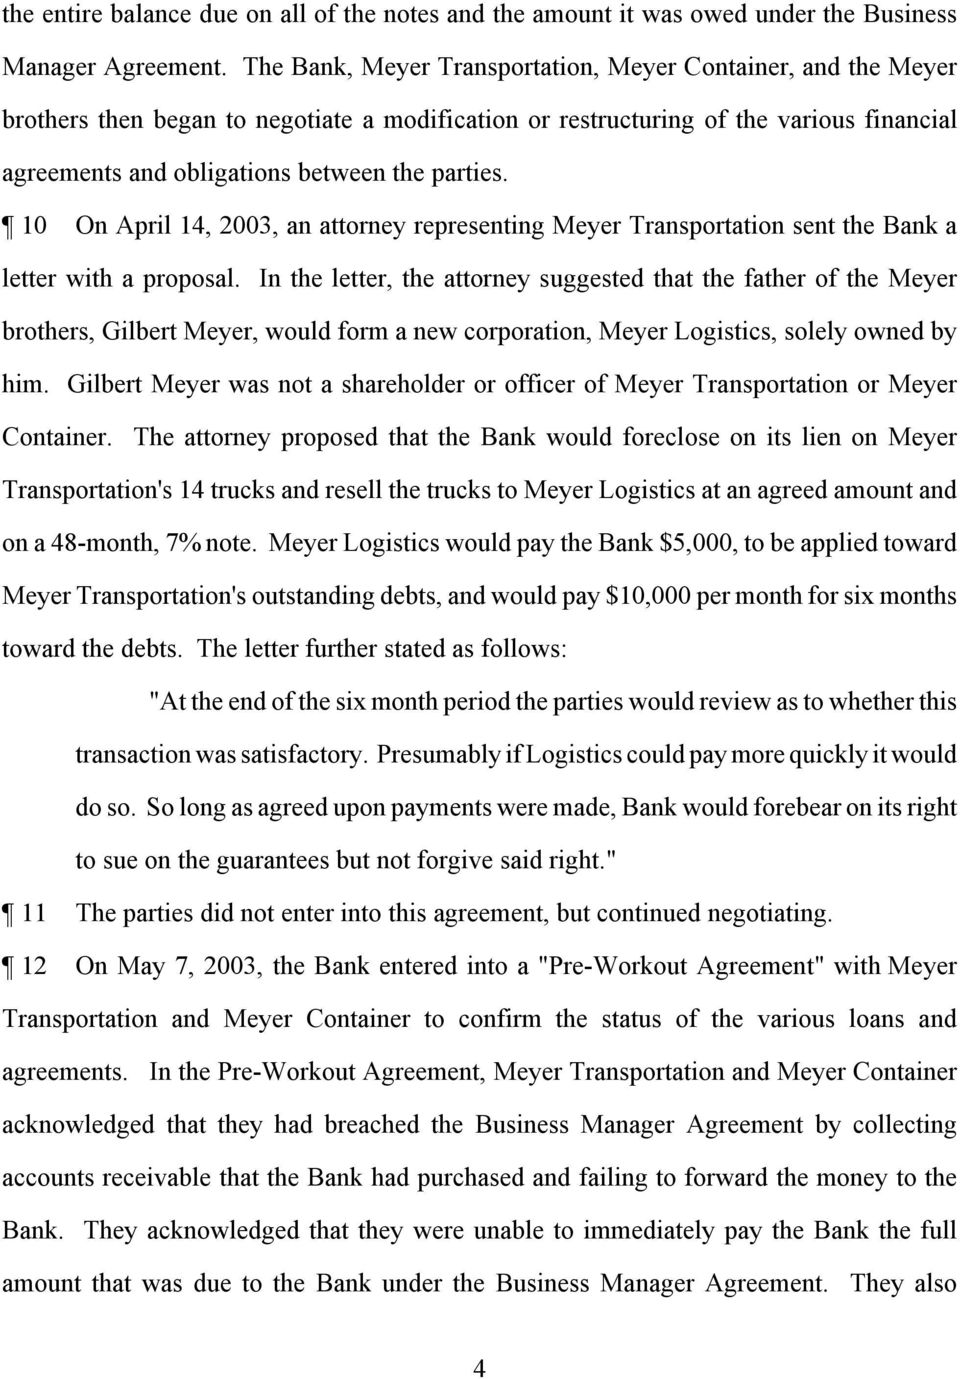 10 On April 14, 2003, an attorney representing Meyer Transportation sent the Bank a letter with a proposal.